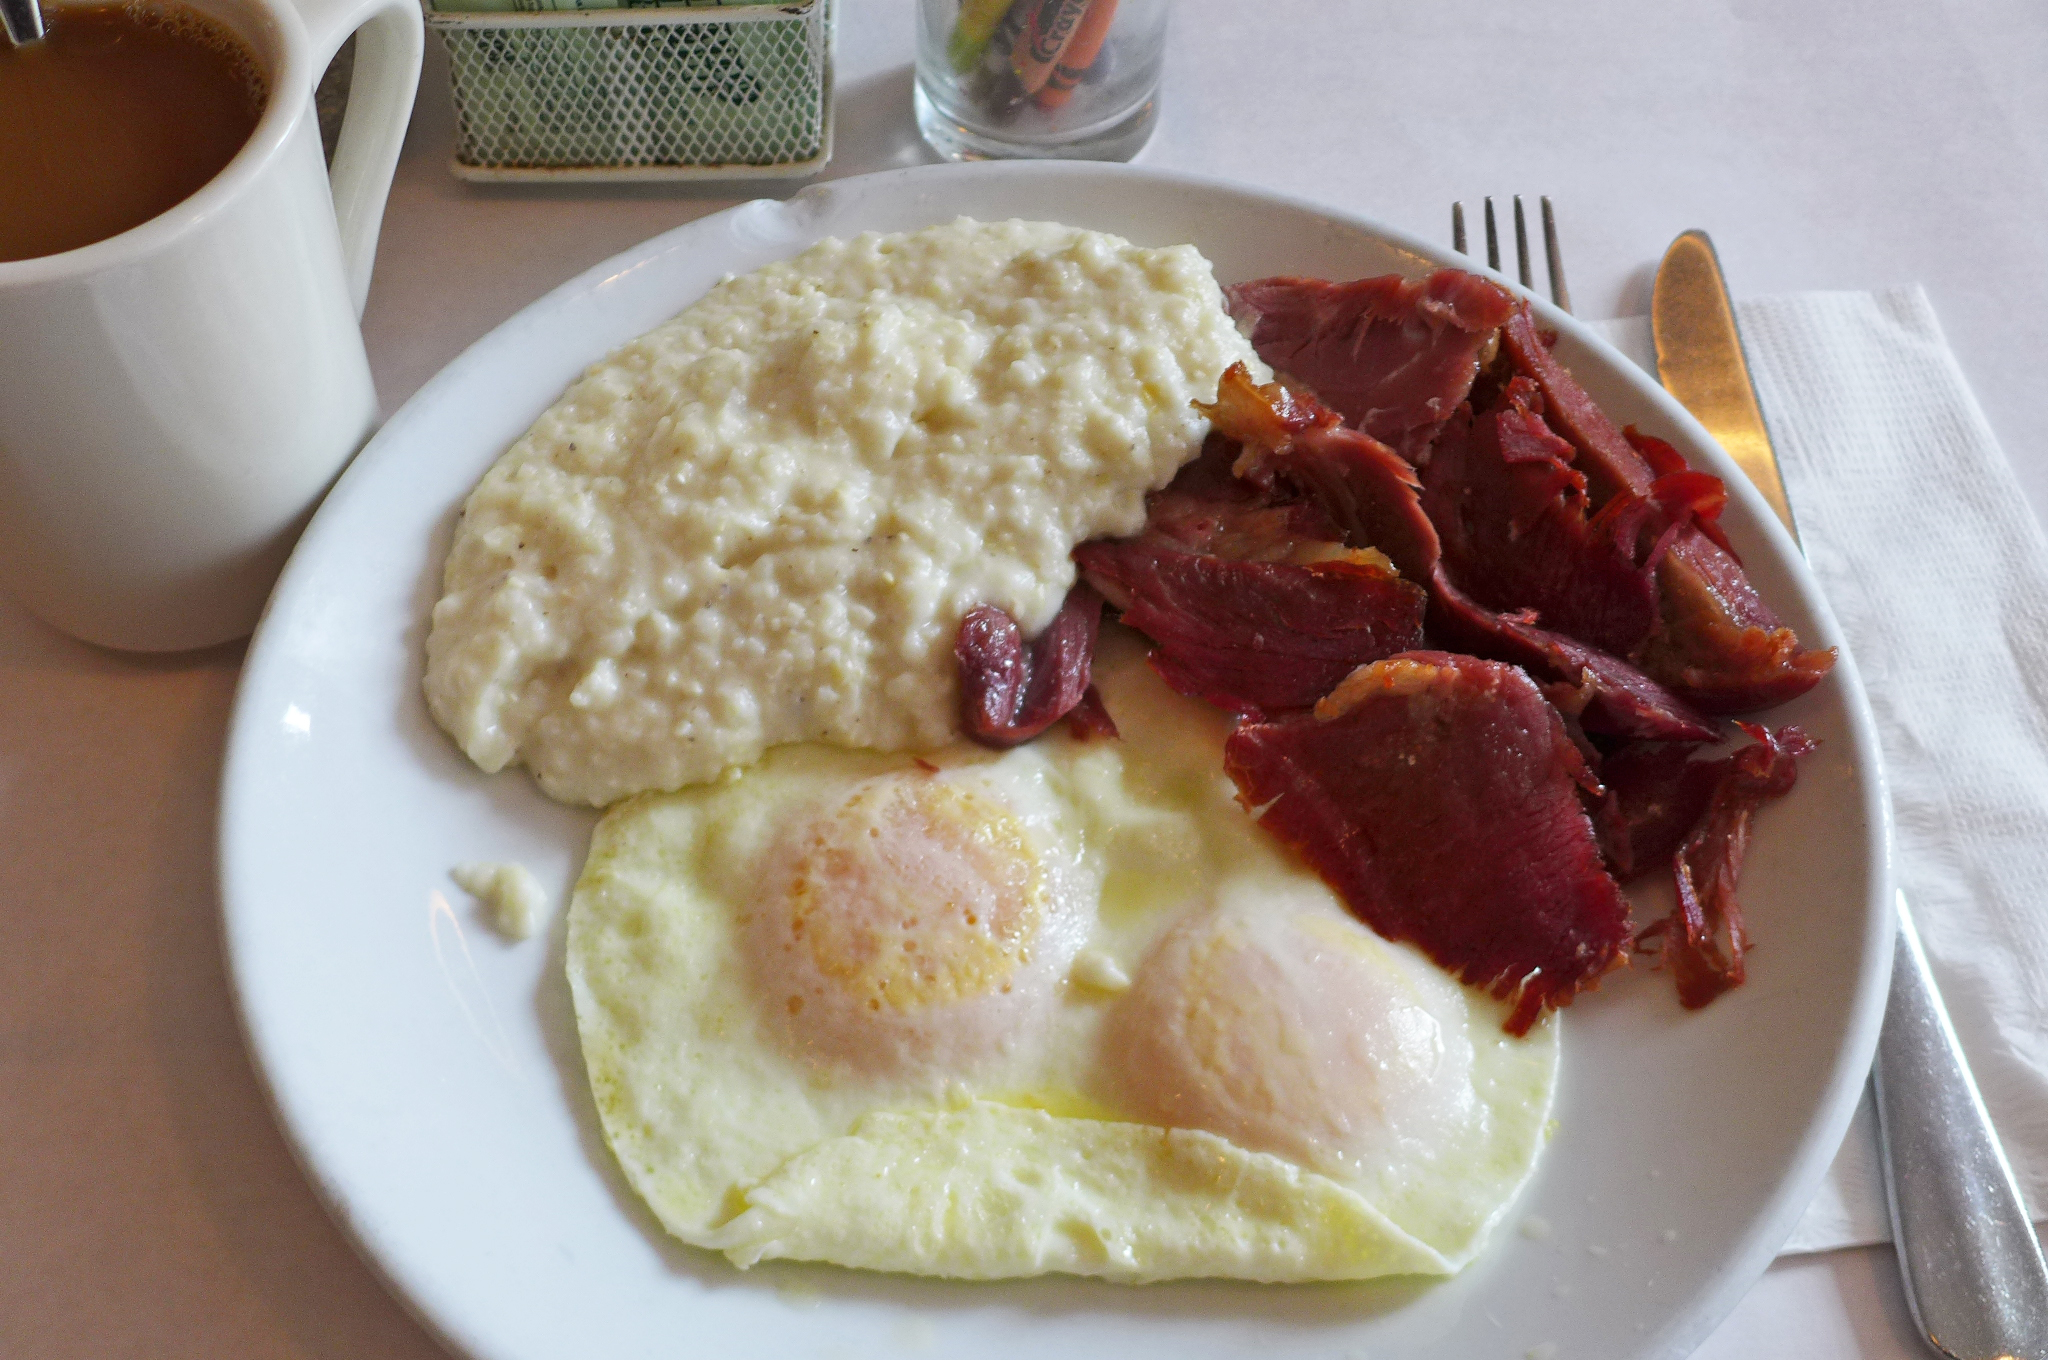 Two over easy eggs, a pool of lumpy grits, and pile of country ham hacked off in swatches rather than slices.